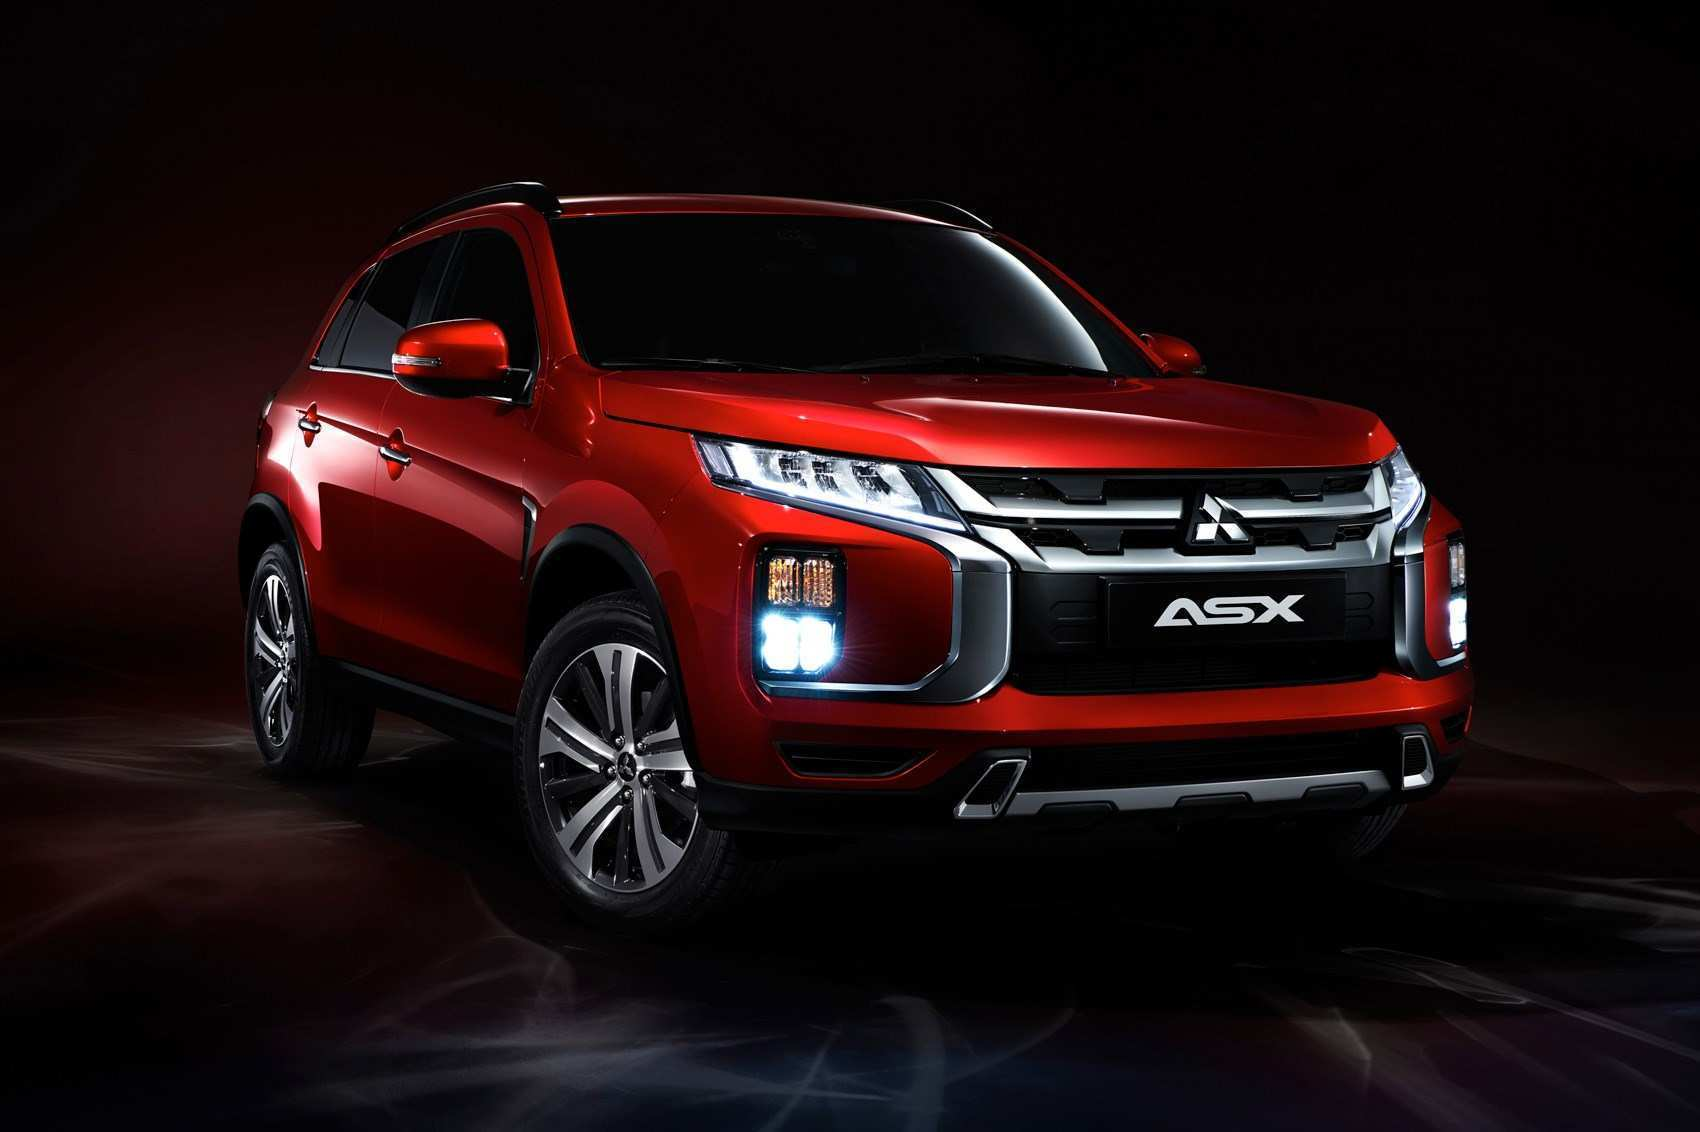 99 The Best 2019 Mitsubishi Asx Rumors